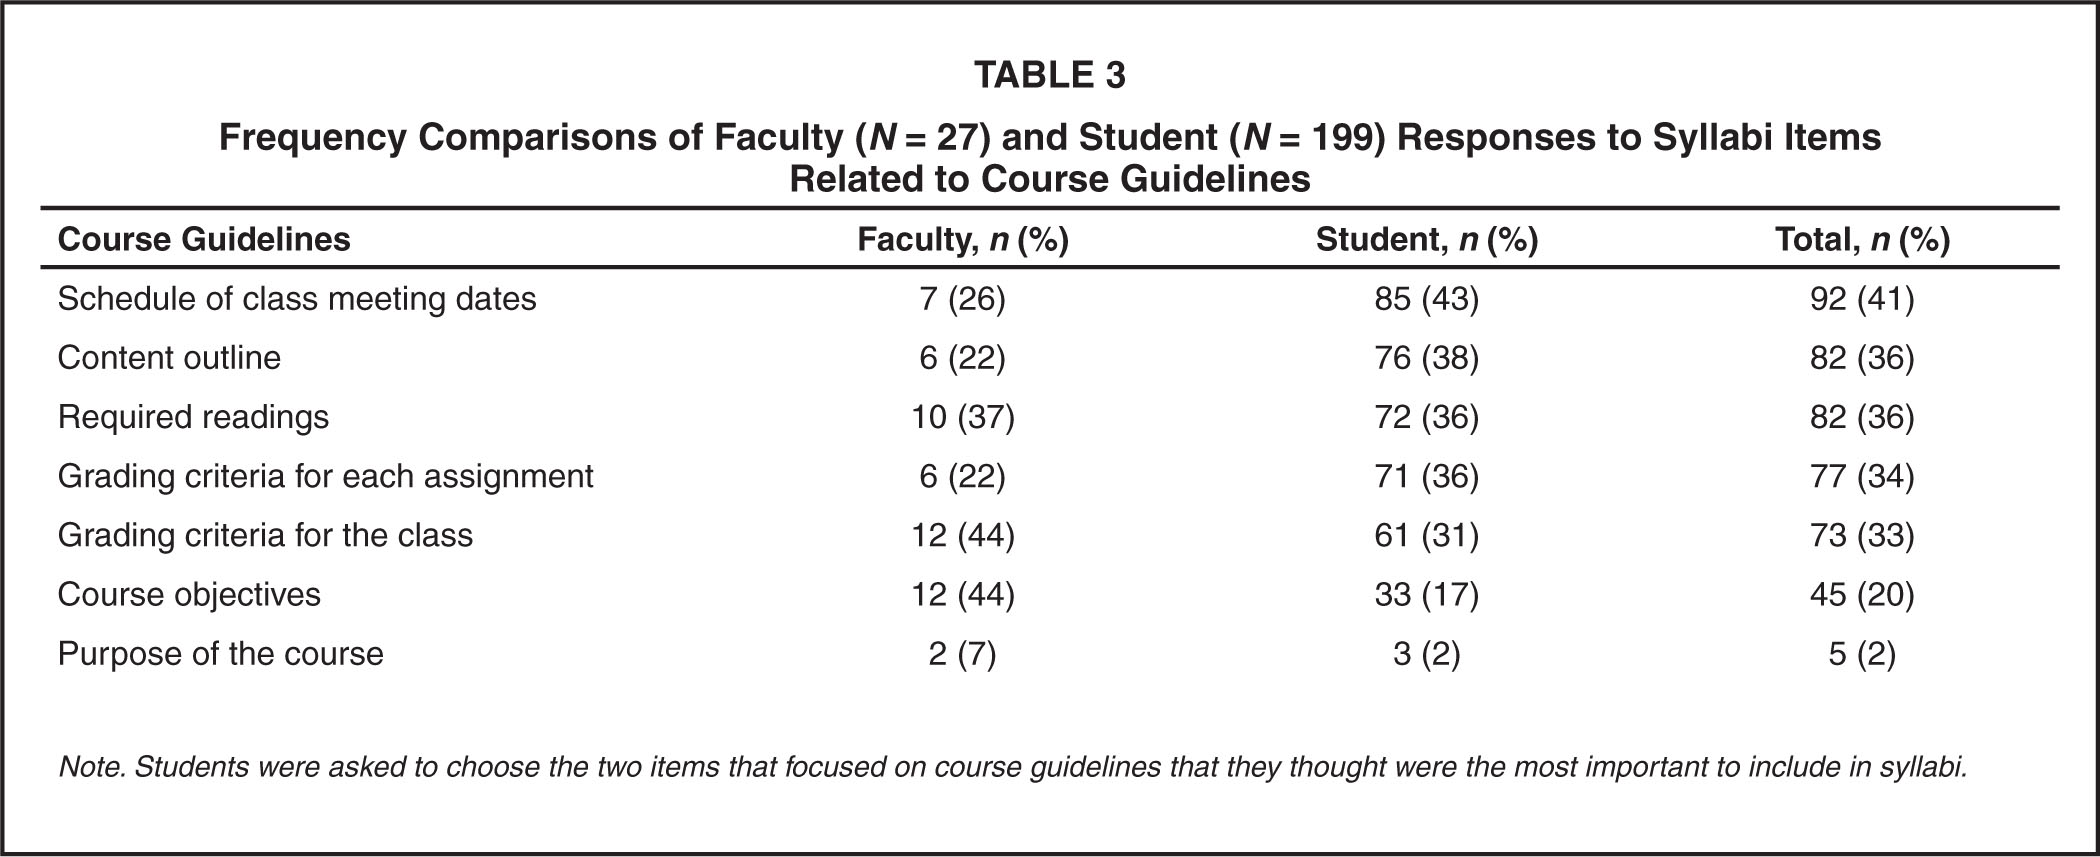 Frequency Comparisons of Faculty (N = 27) and Student (N = 199) Responses to Syllabi Items Related to Course Guidelines